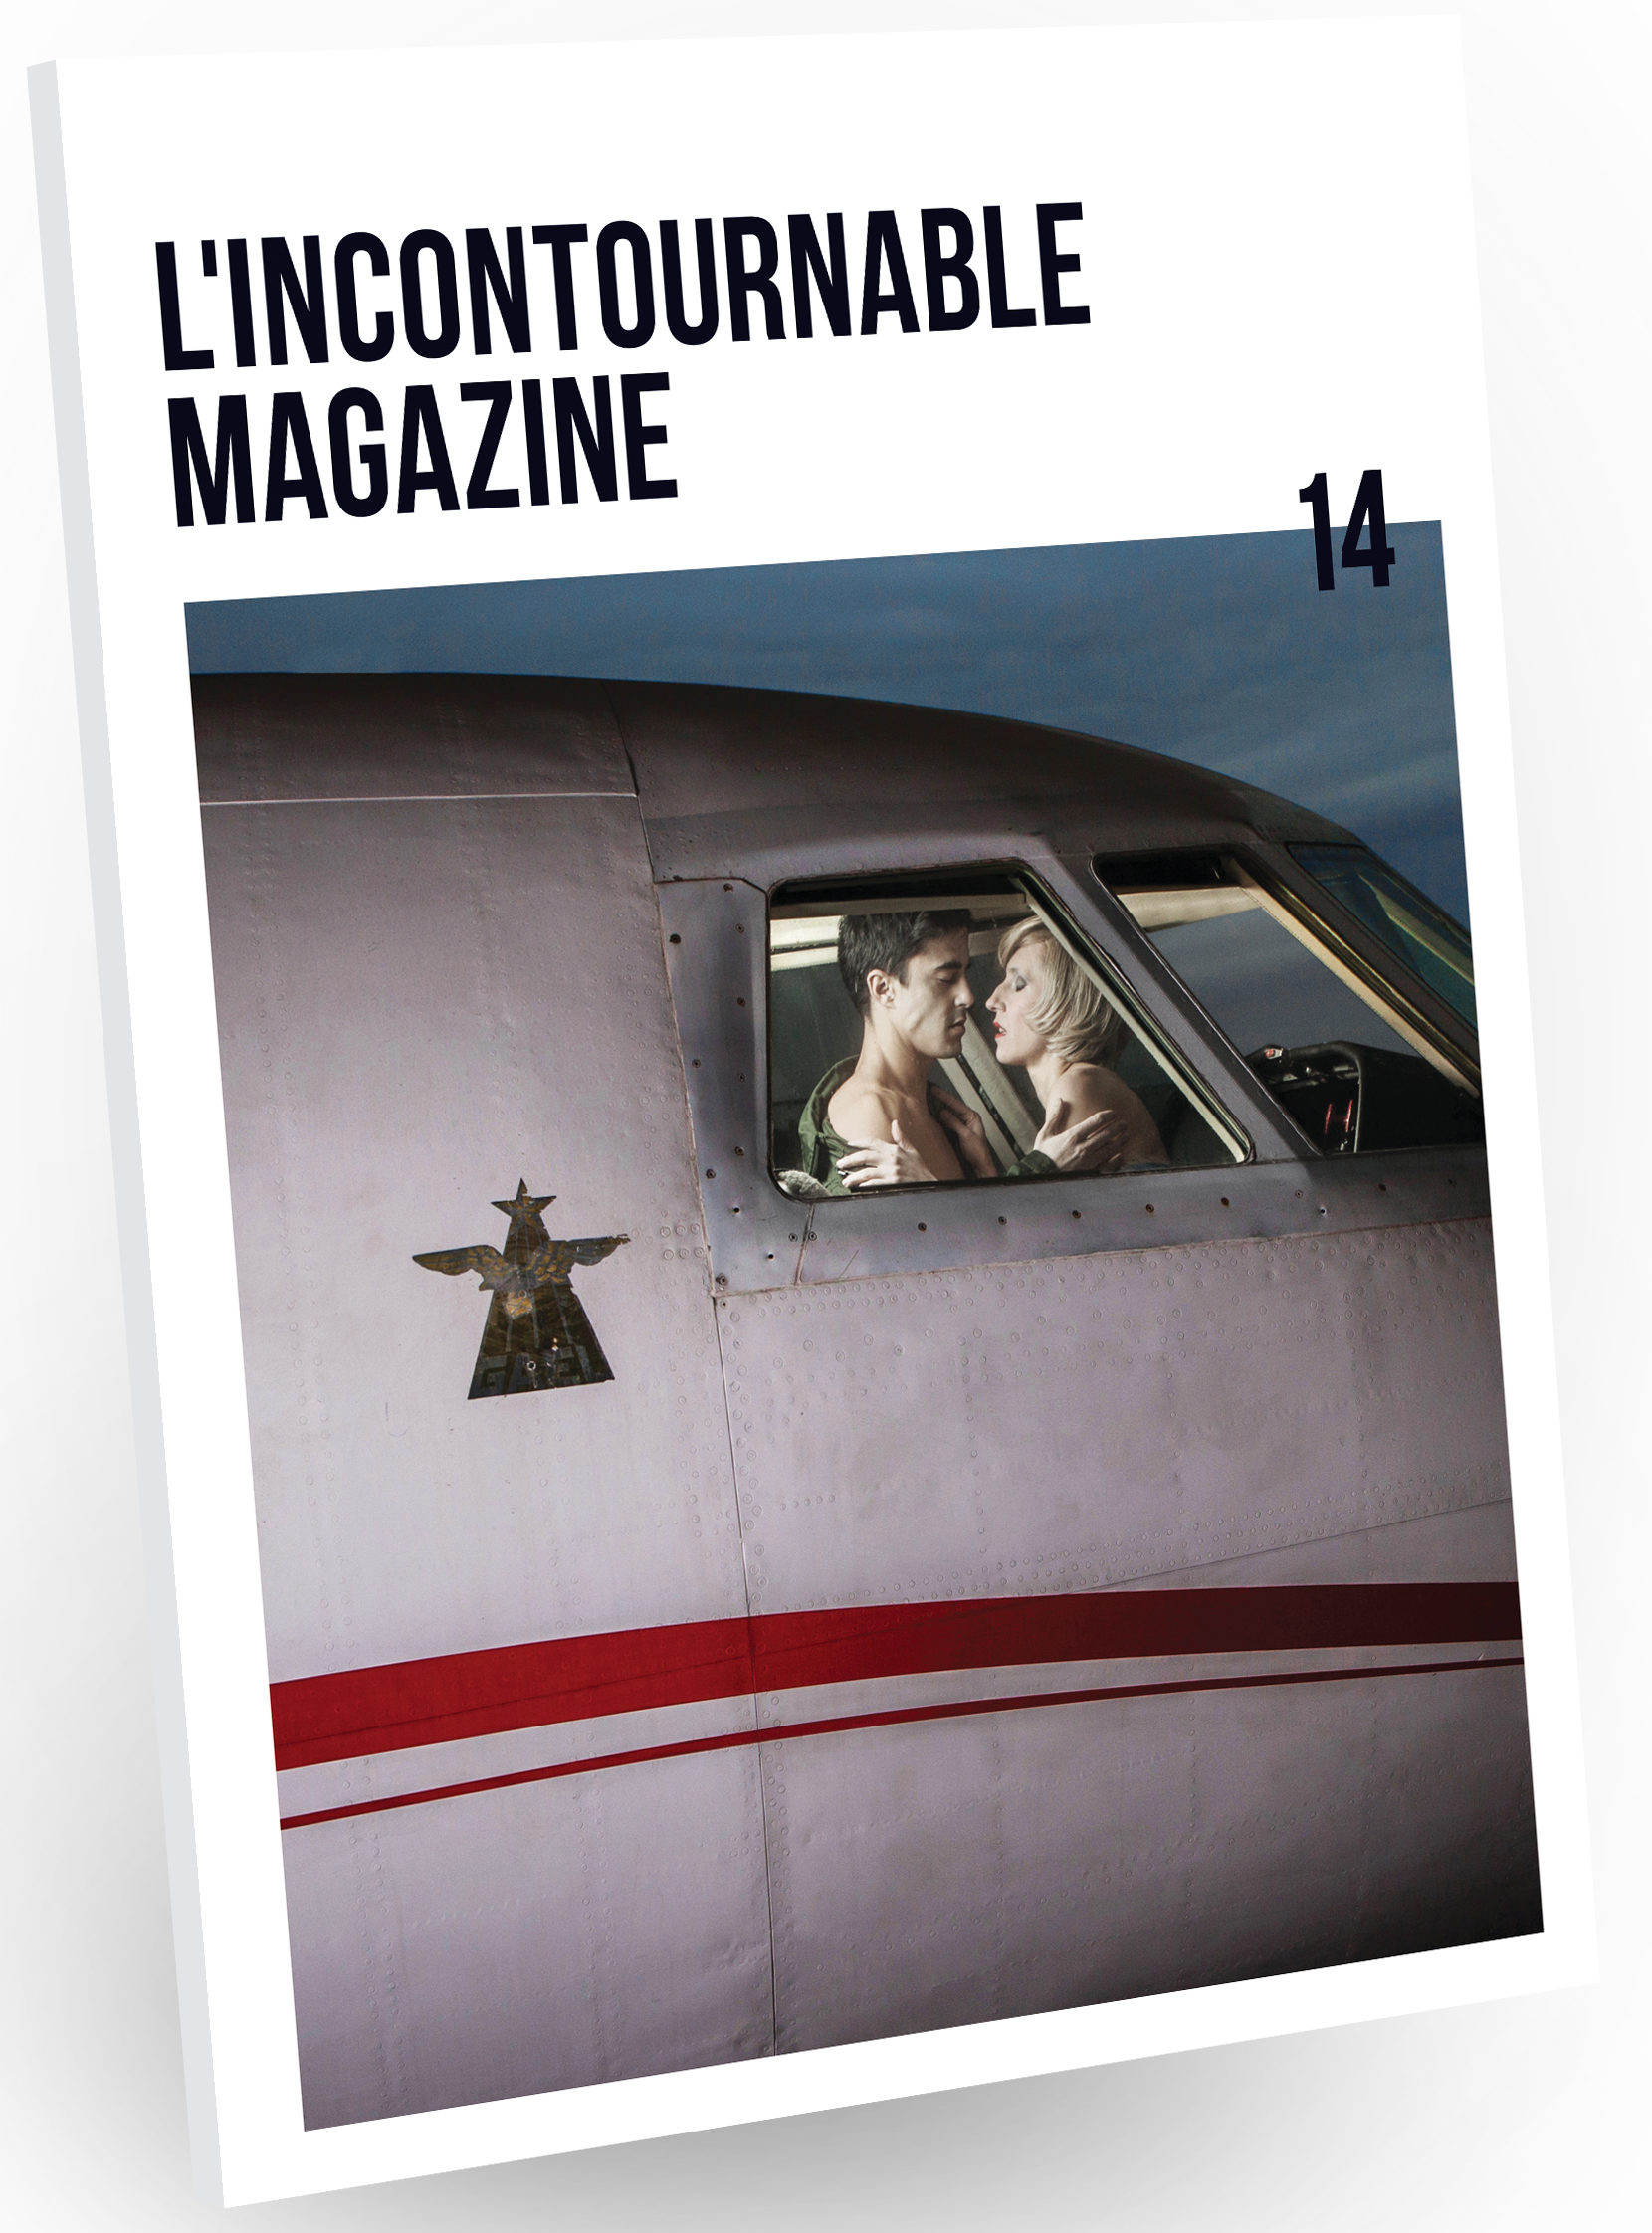 L'incontournable Magazine, photo Cédric Roulliat